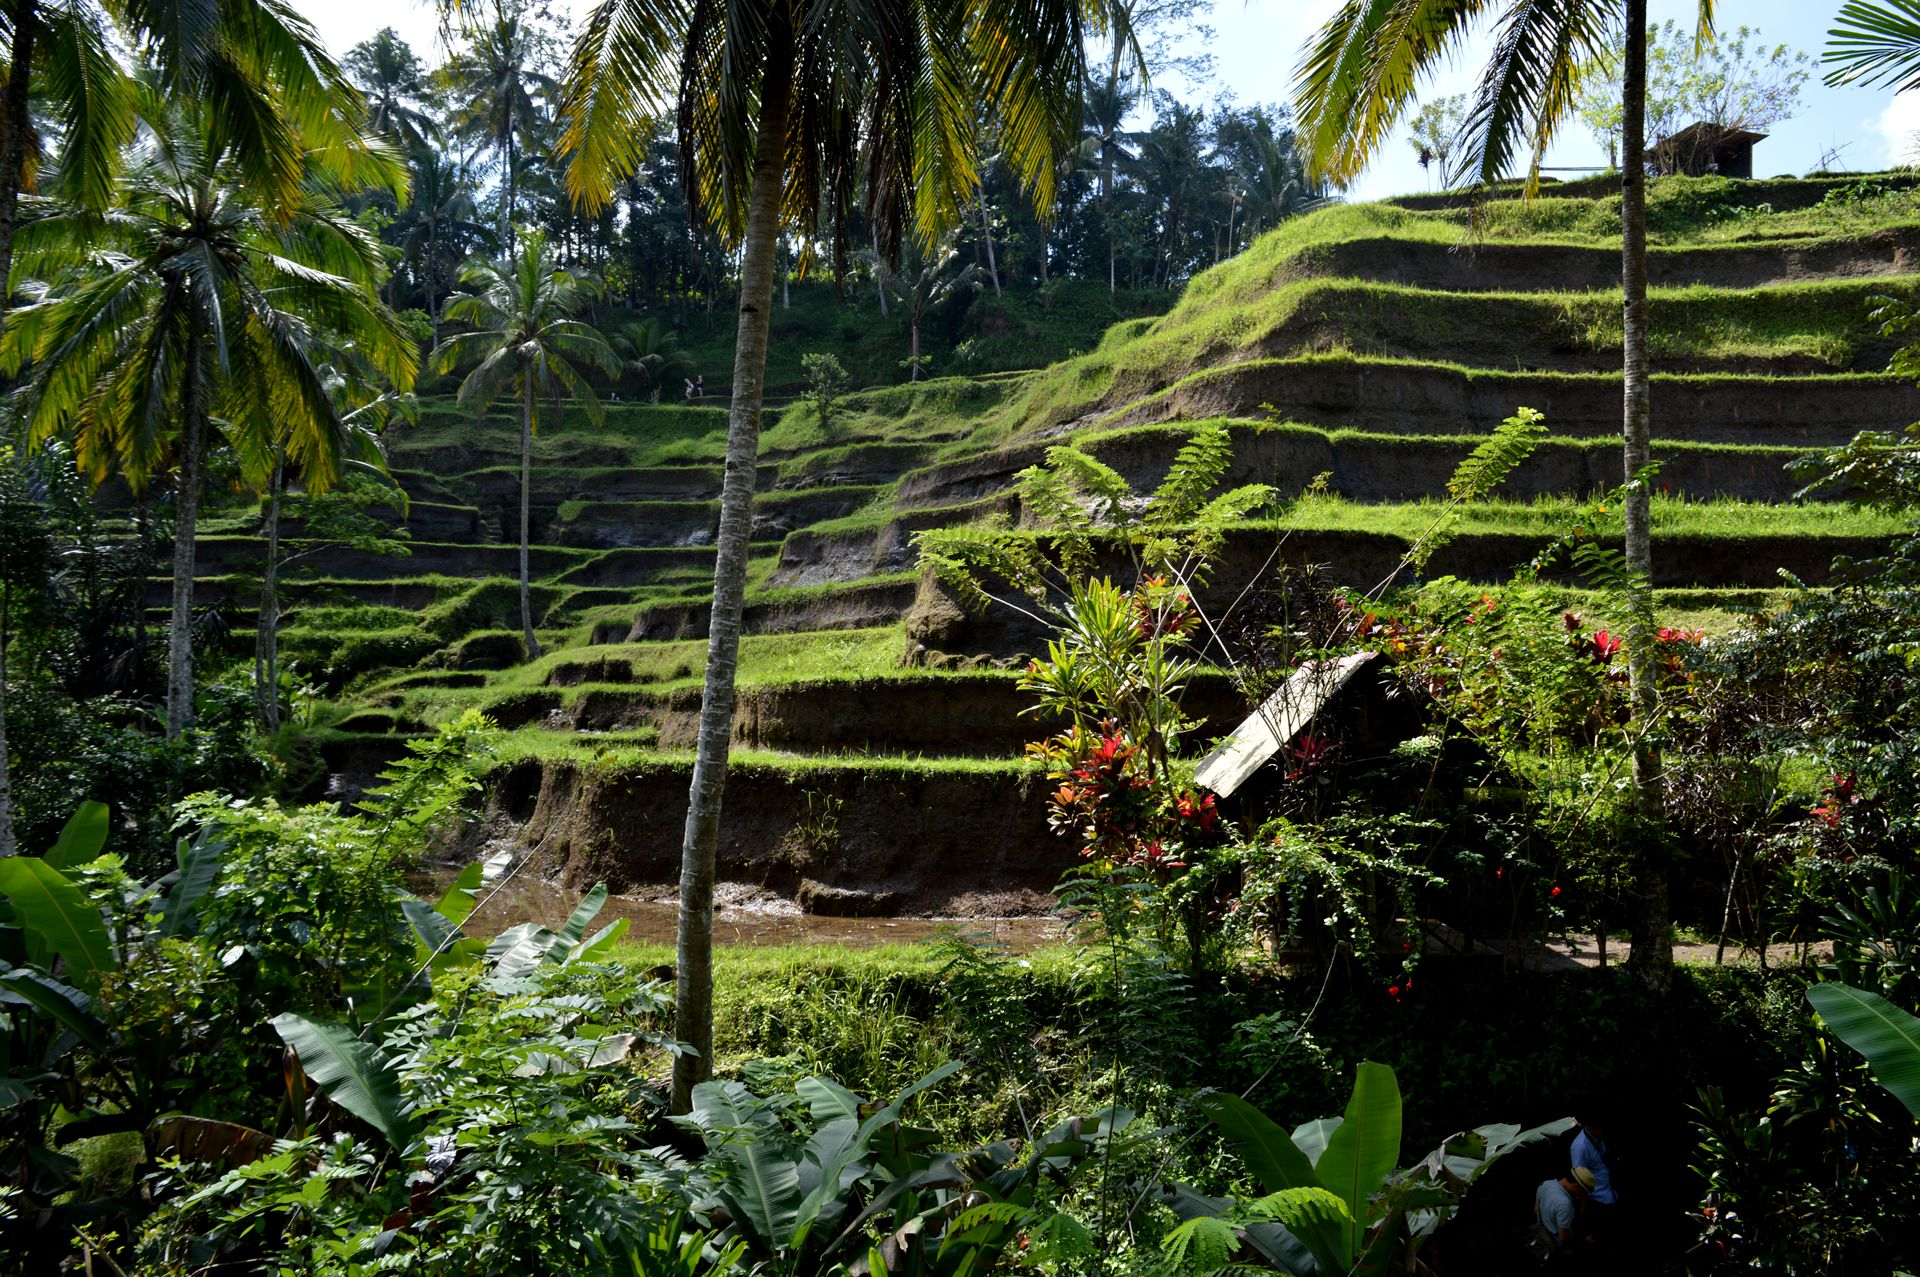 Tegelalang rice terrace in Bali